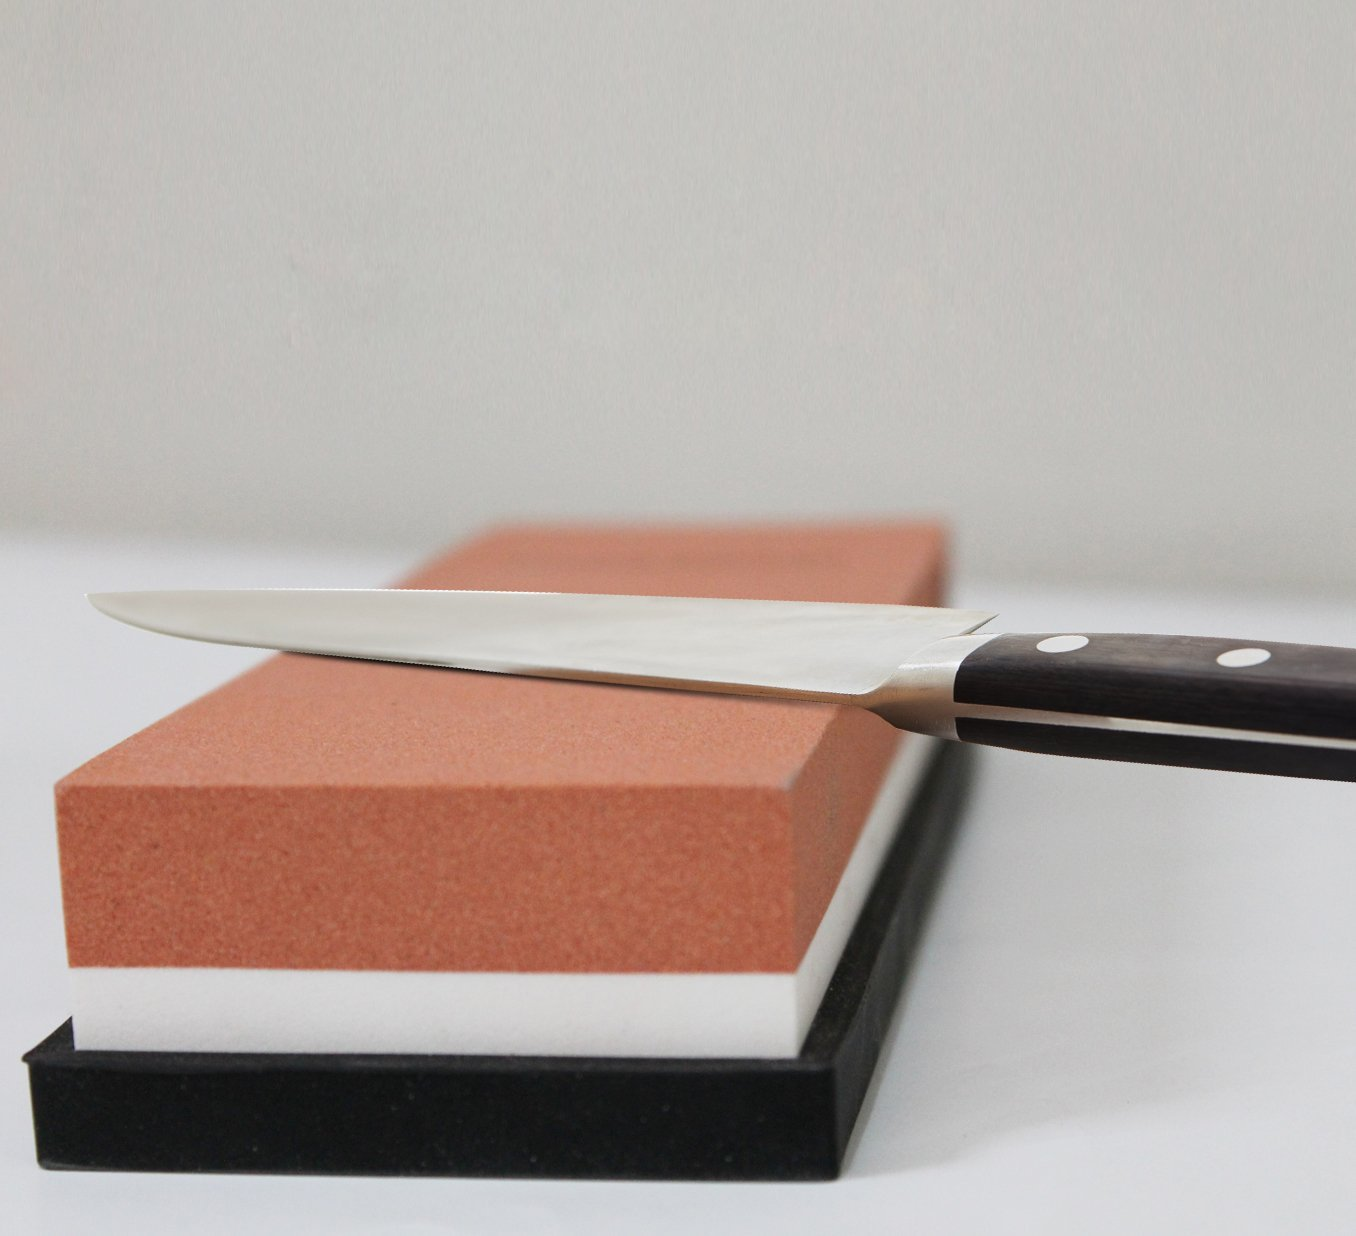 Sharpening a knife with a sharpening stone